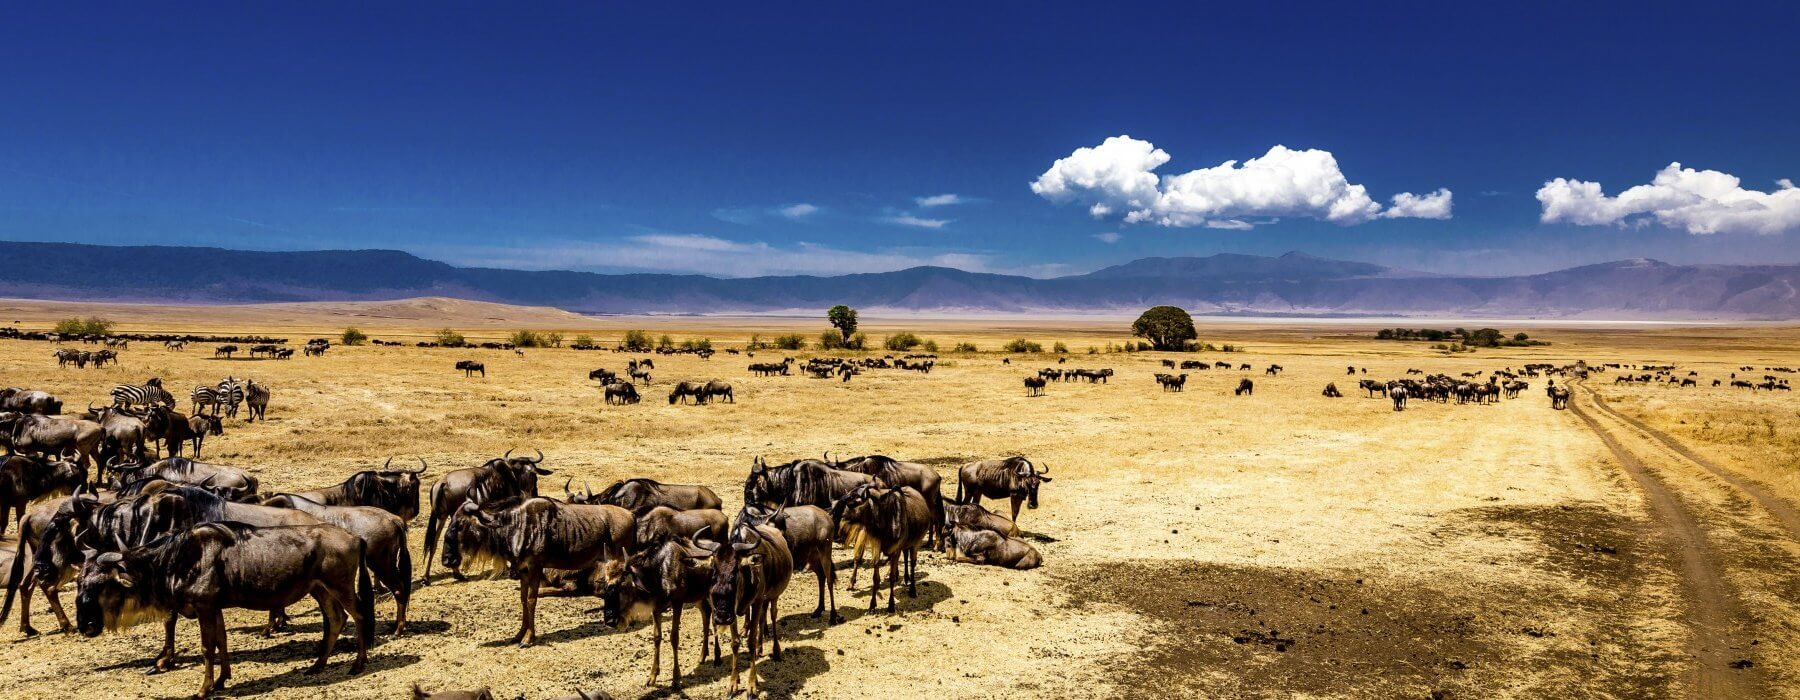 Ngorongoro Crater Safari: One of the Best Place to Visit in August